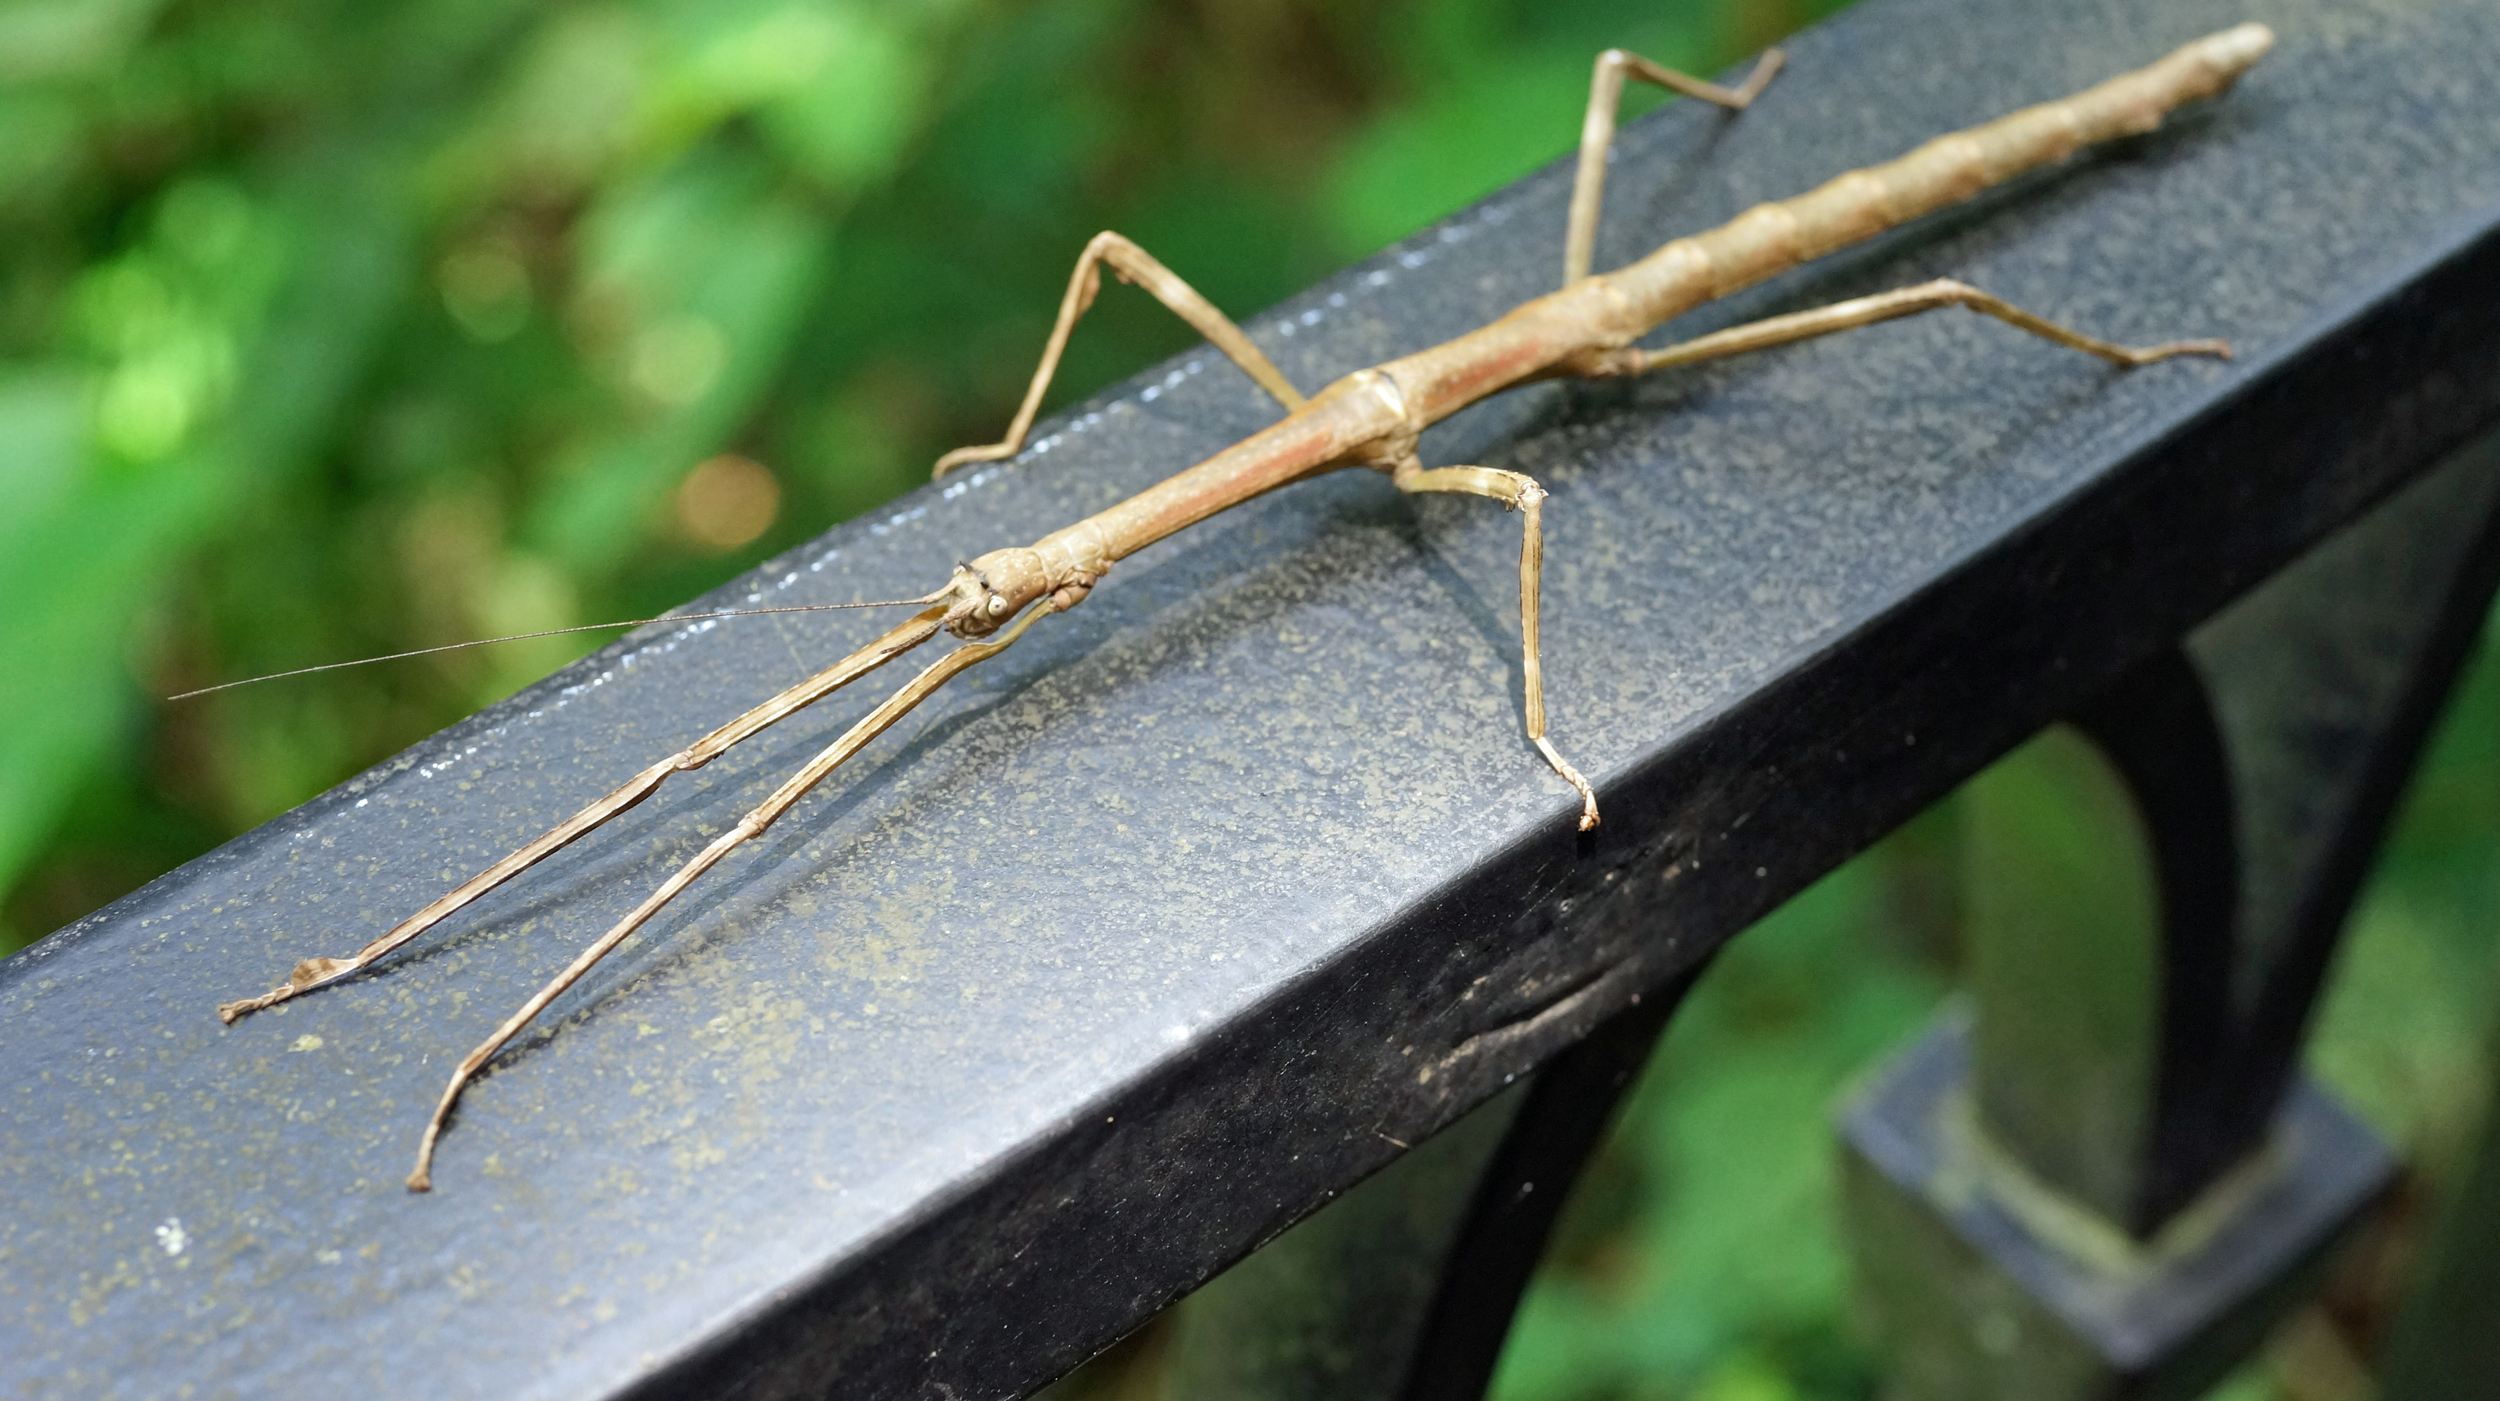 Rather menacing stick insect at the Peak, we do not have an abundance of wildlife so this is one of our more interesting creatures